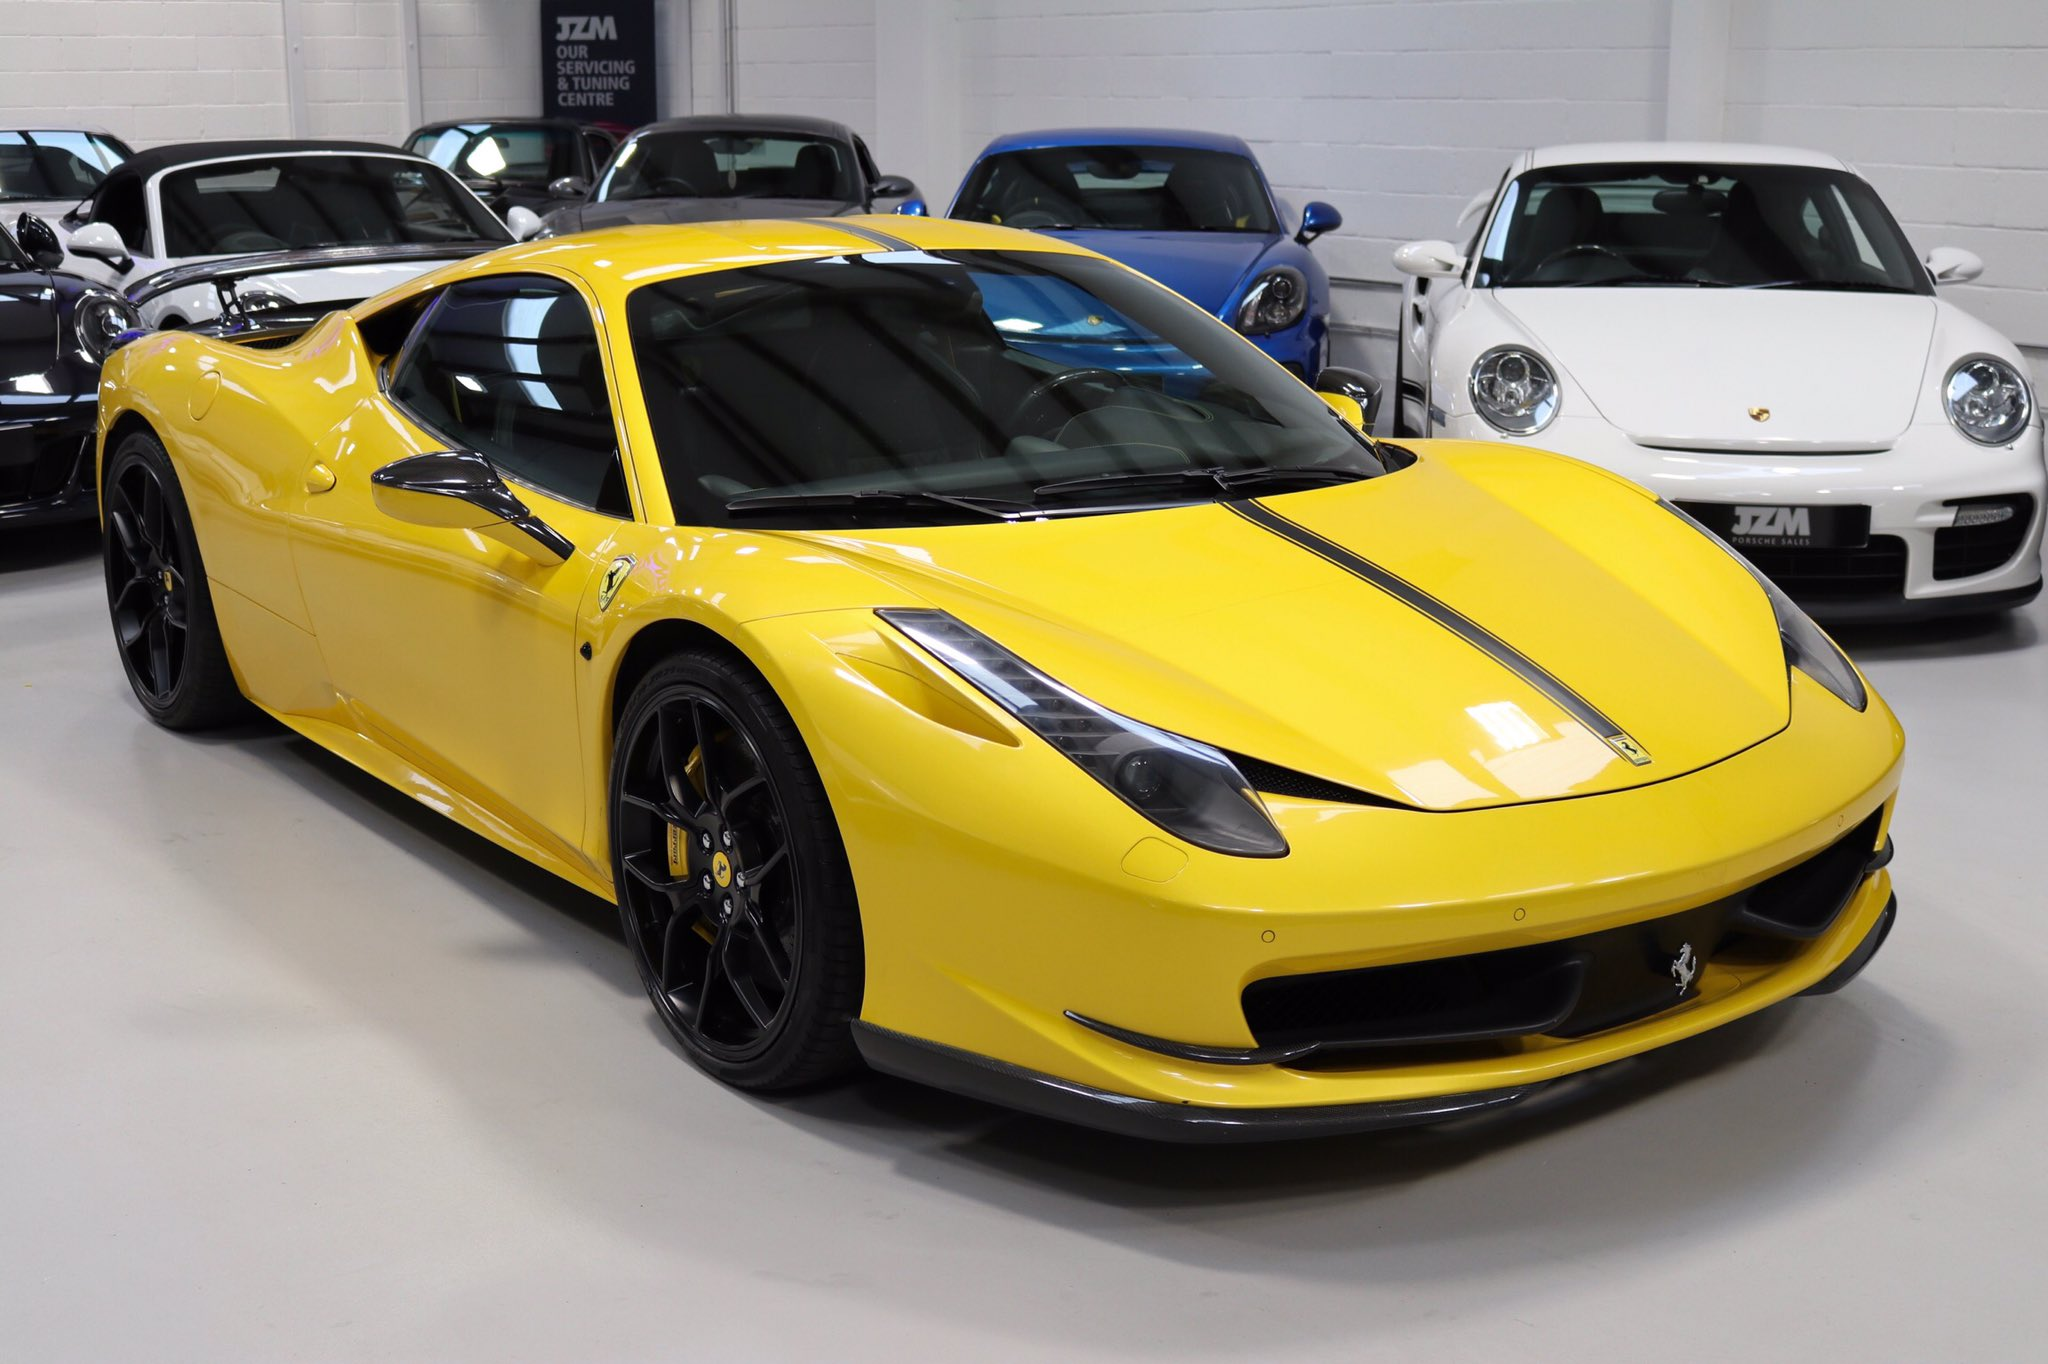 sale up ferrari com with speciale close others and the dubaidrives for